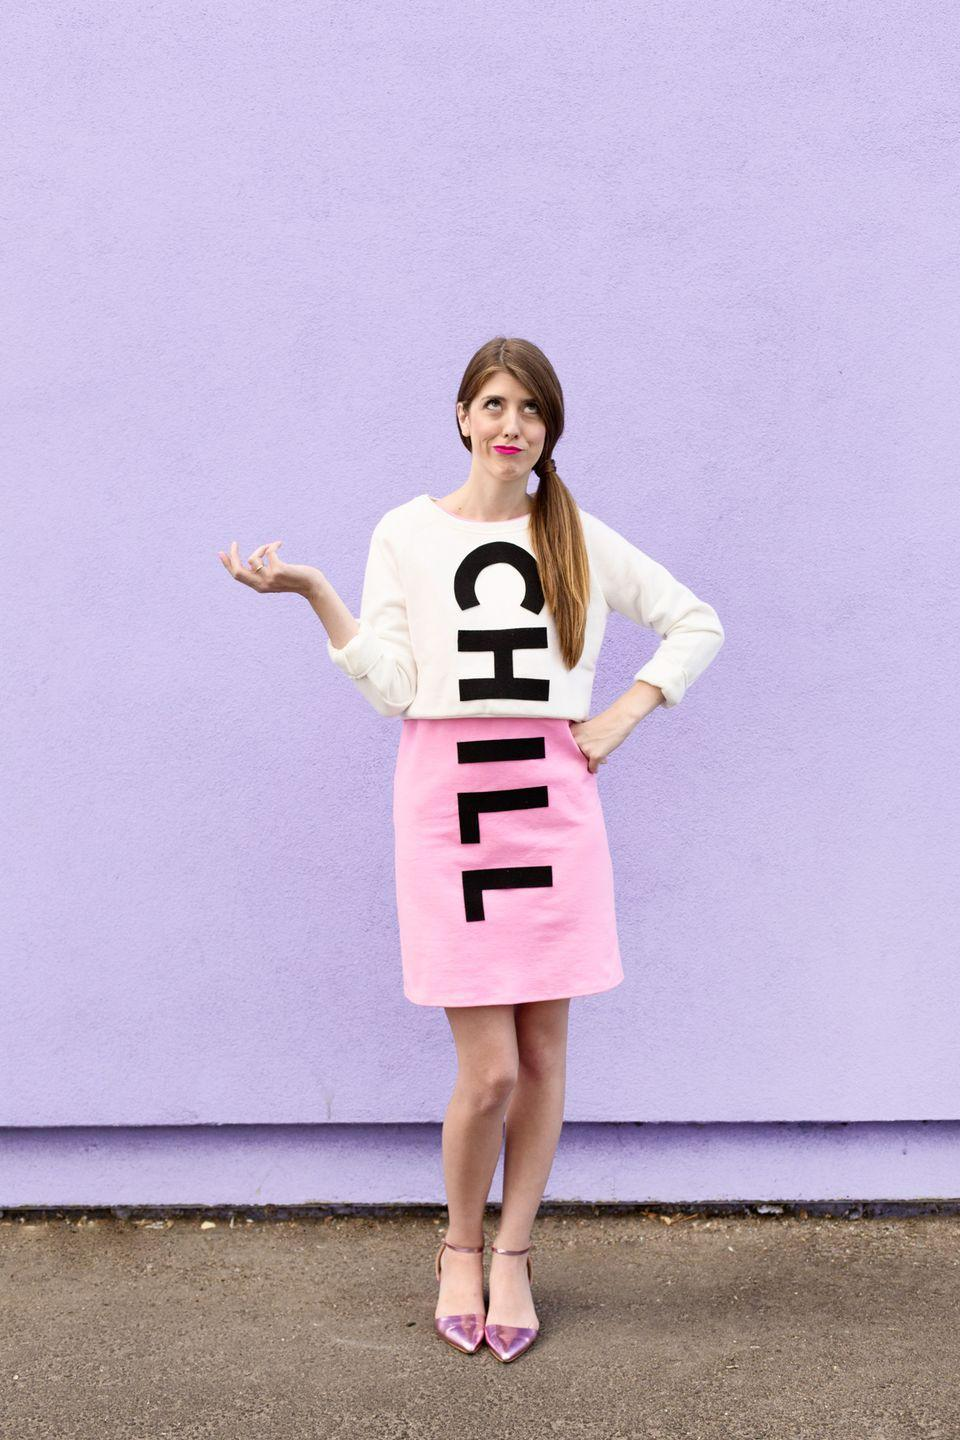 """<p>There's no need to stress about a DIY costume, especially with this one at your disposal. It's cheap and easy—simply pin big black felt letters to a white top and a pink skirt. </p><p><a class=""""link rapid-noclick-resp"""" href=""""https://studiodiy.com/diy-chill-pill-costume/"""" rel=""""nofollow noopener"""" target=""""_blank"""" data-ylk=""""slk:GET THE TUTORIAL"""">GET THE TUTORIAL</a></p><p><a class=""""link rapid-noclick-resp"""" href=""""https://www.amazon.com/Nu-Source-Inc-100-ACRYLIC-FELT-1281/dp/B001THXM6C/?tag=syn-yahoo-20&ascsubtag=%5Bartid%7C10072.g.33547559%5Bsrc%7Cyahoo-us"""" rel=""""nofollow noopener"""" target=""""_blank"""" data-ylk=""""slk:SHOP FELT"""">SHOP FELT</a> </p>"""